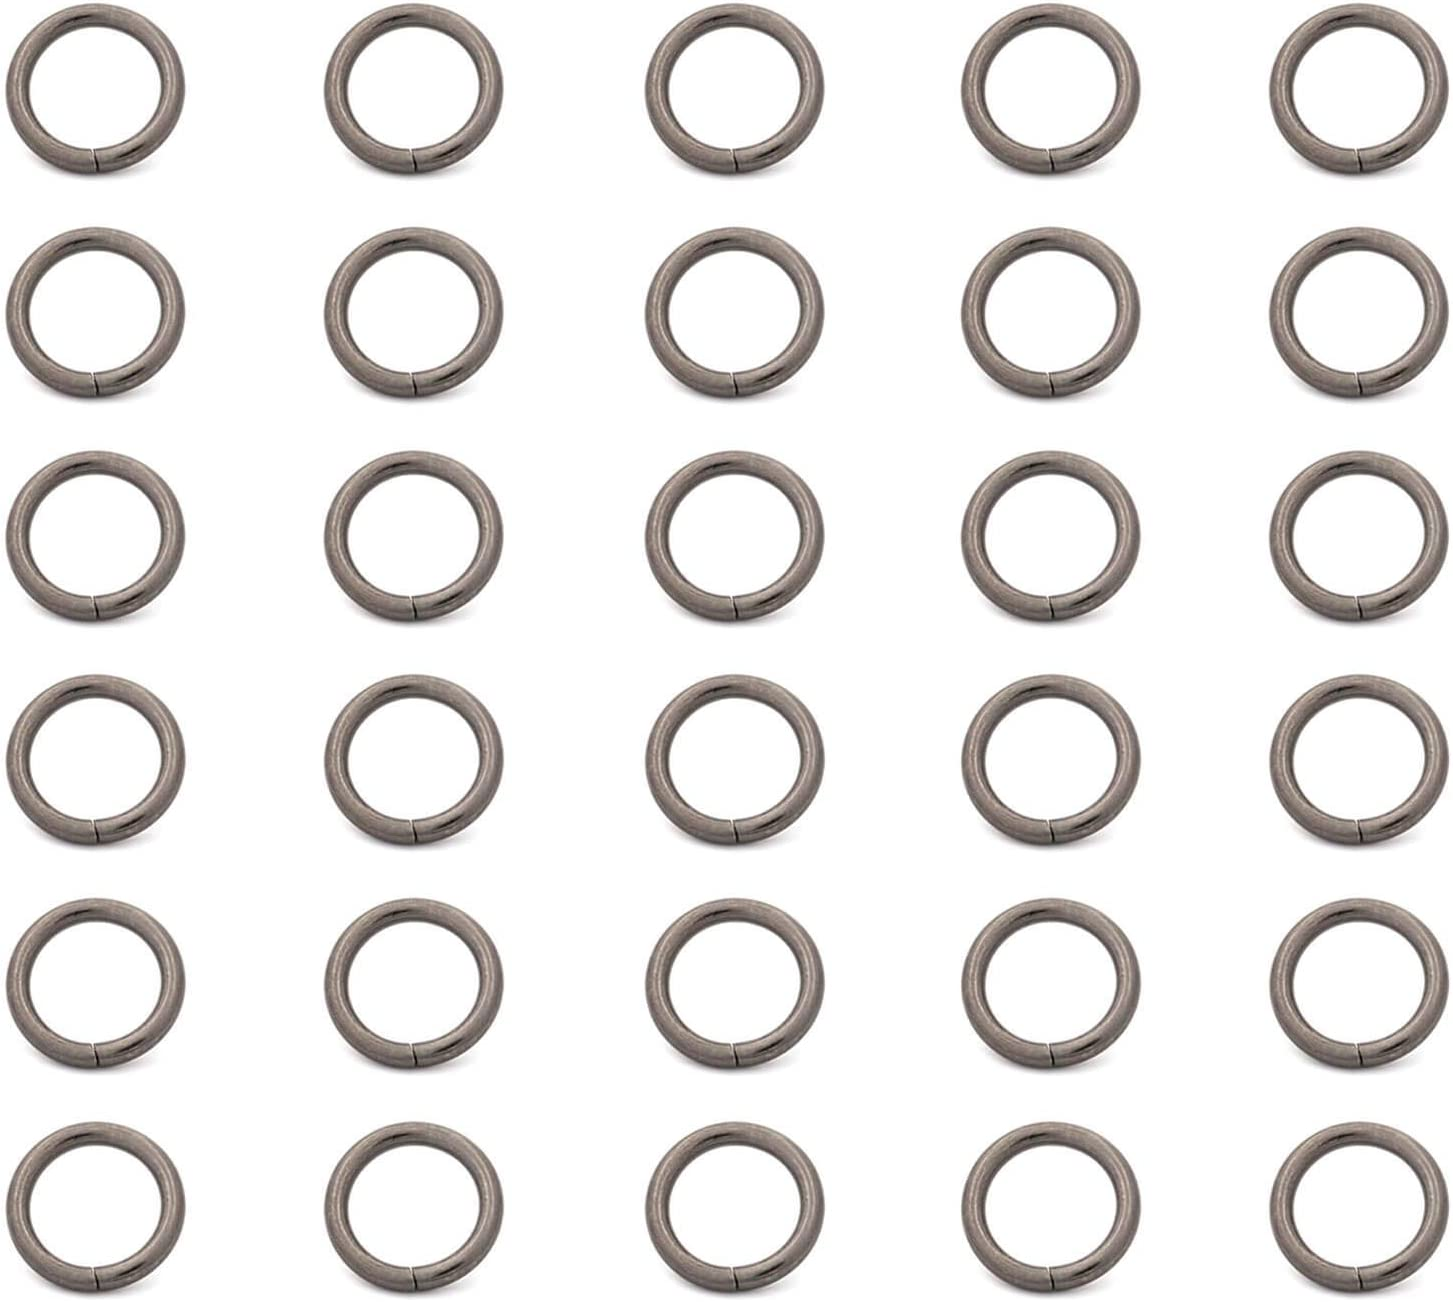 BIKICOCO 3/5'' Metal O Ring Purse Connector Round Loop Buckles Non Welded for Bags, Collars, Shoes, and Belt Straps, Gunmetal, Pack of 30